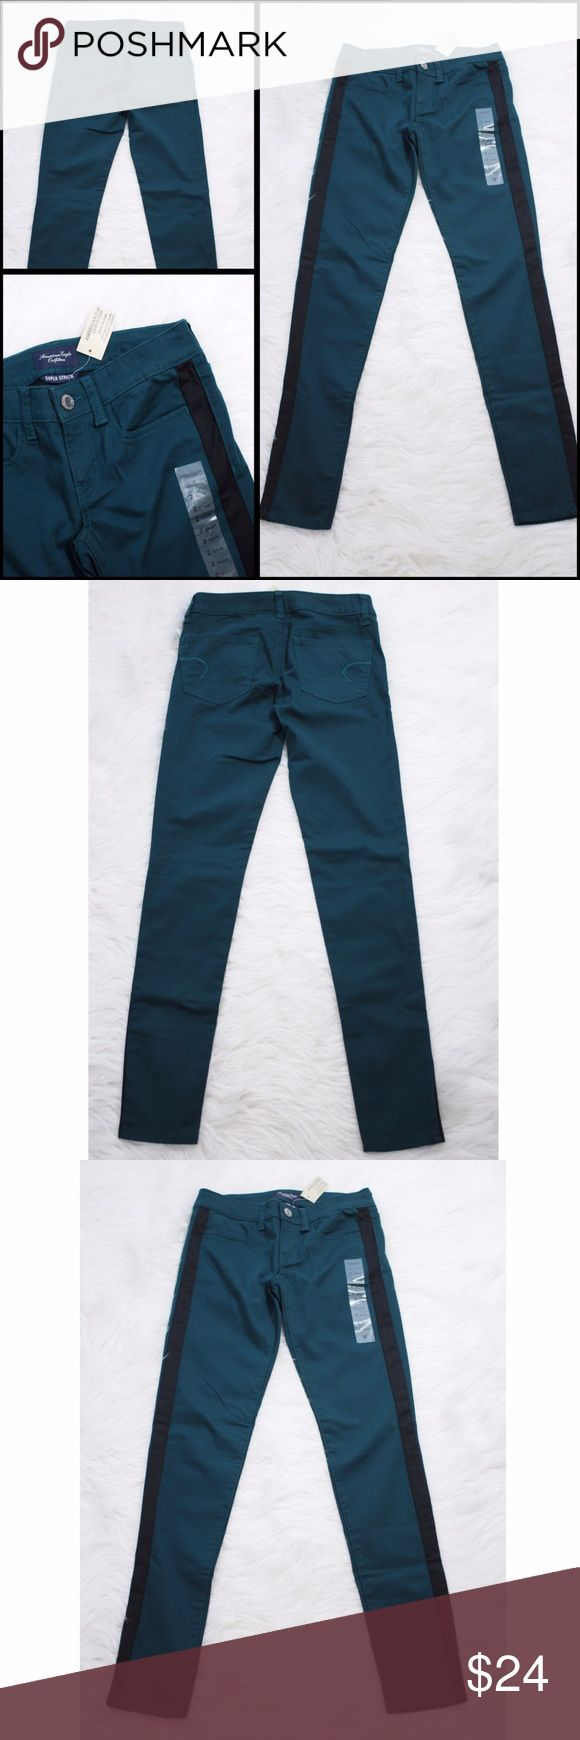 AEO American Eagle Outfitters Jeggings Teal 2 AEO American Eagle Outfitters  Dark Teal Jeggings  Black Stripe Down Side of Leg Super Stretch  Size Marked: Womens 2   Approximate Measurements Laying Flat: Waist: 28 Rise: 7 Inseam: 30.5 Leg Opening: 9  Locator# 0810-004 undefined Jeans Skinny